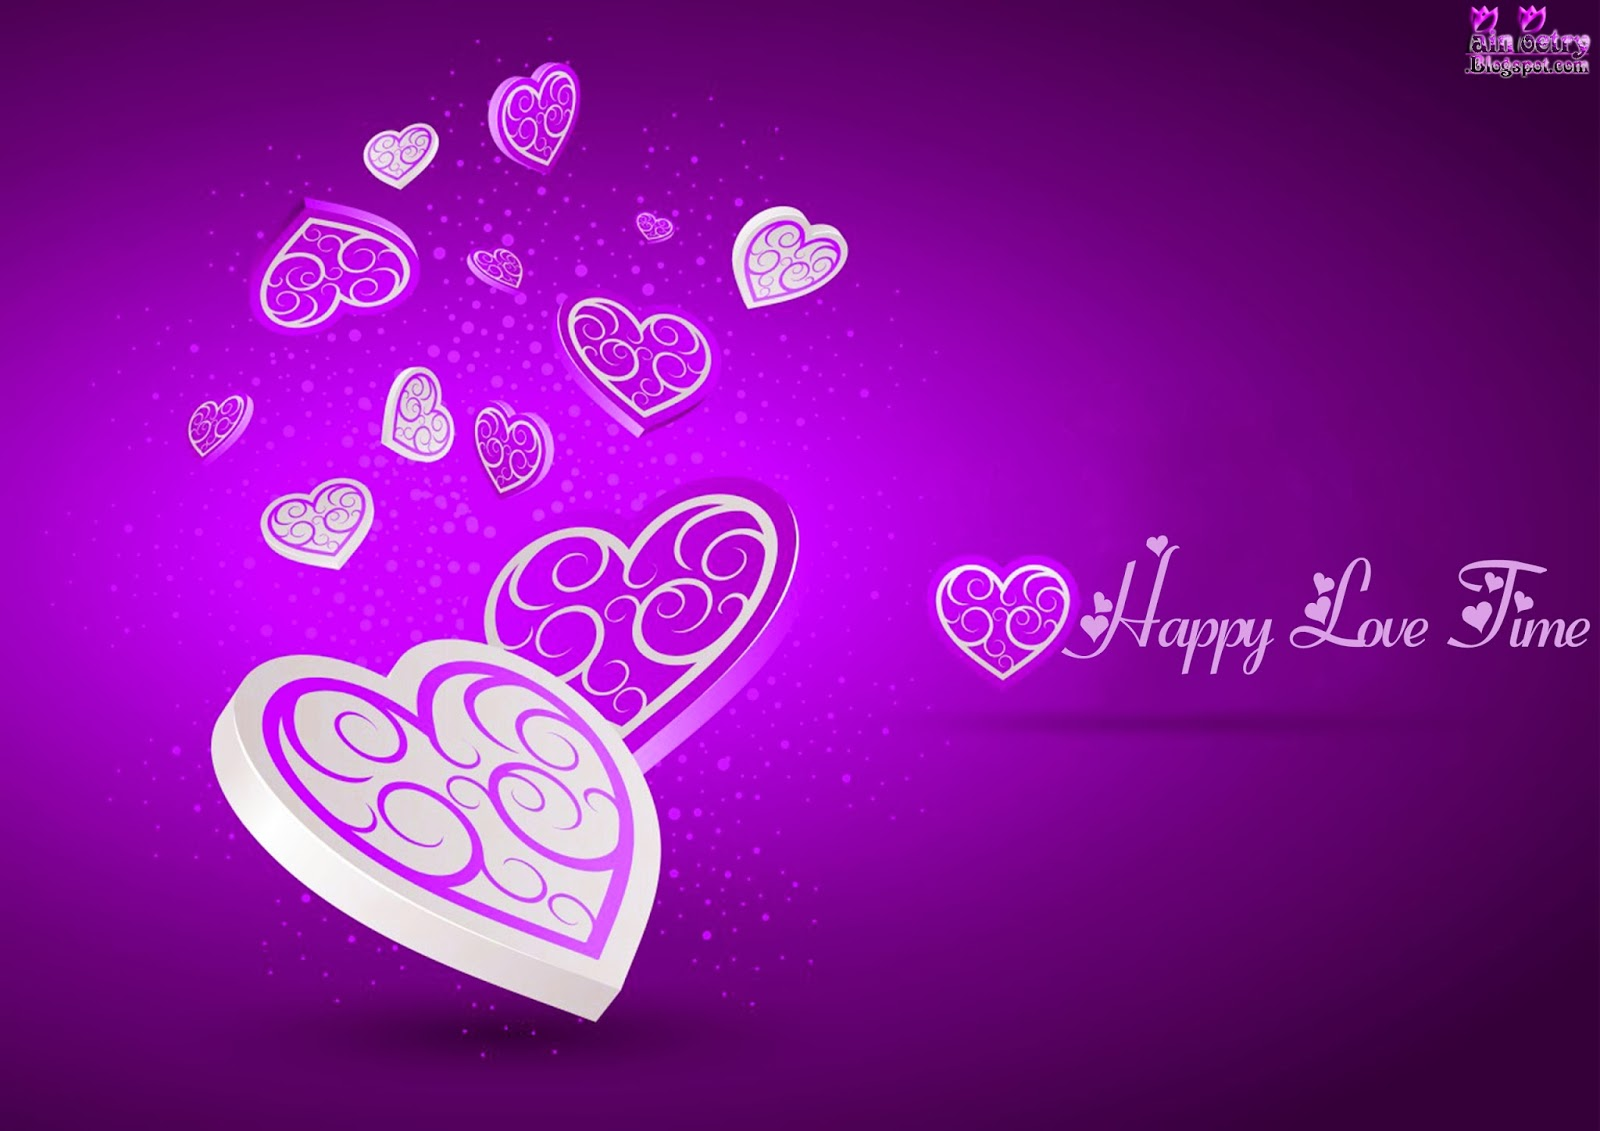 Happy-Valentines-Day-Wishes-Picture-Wallpaper-Image-Photo-HD Wide